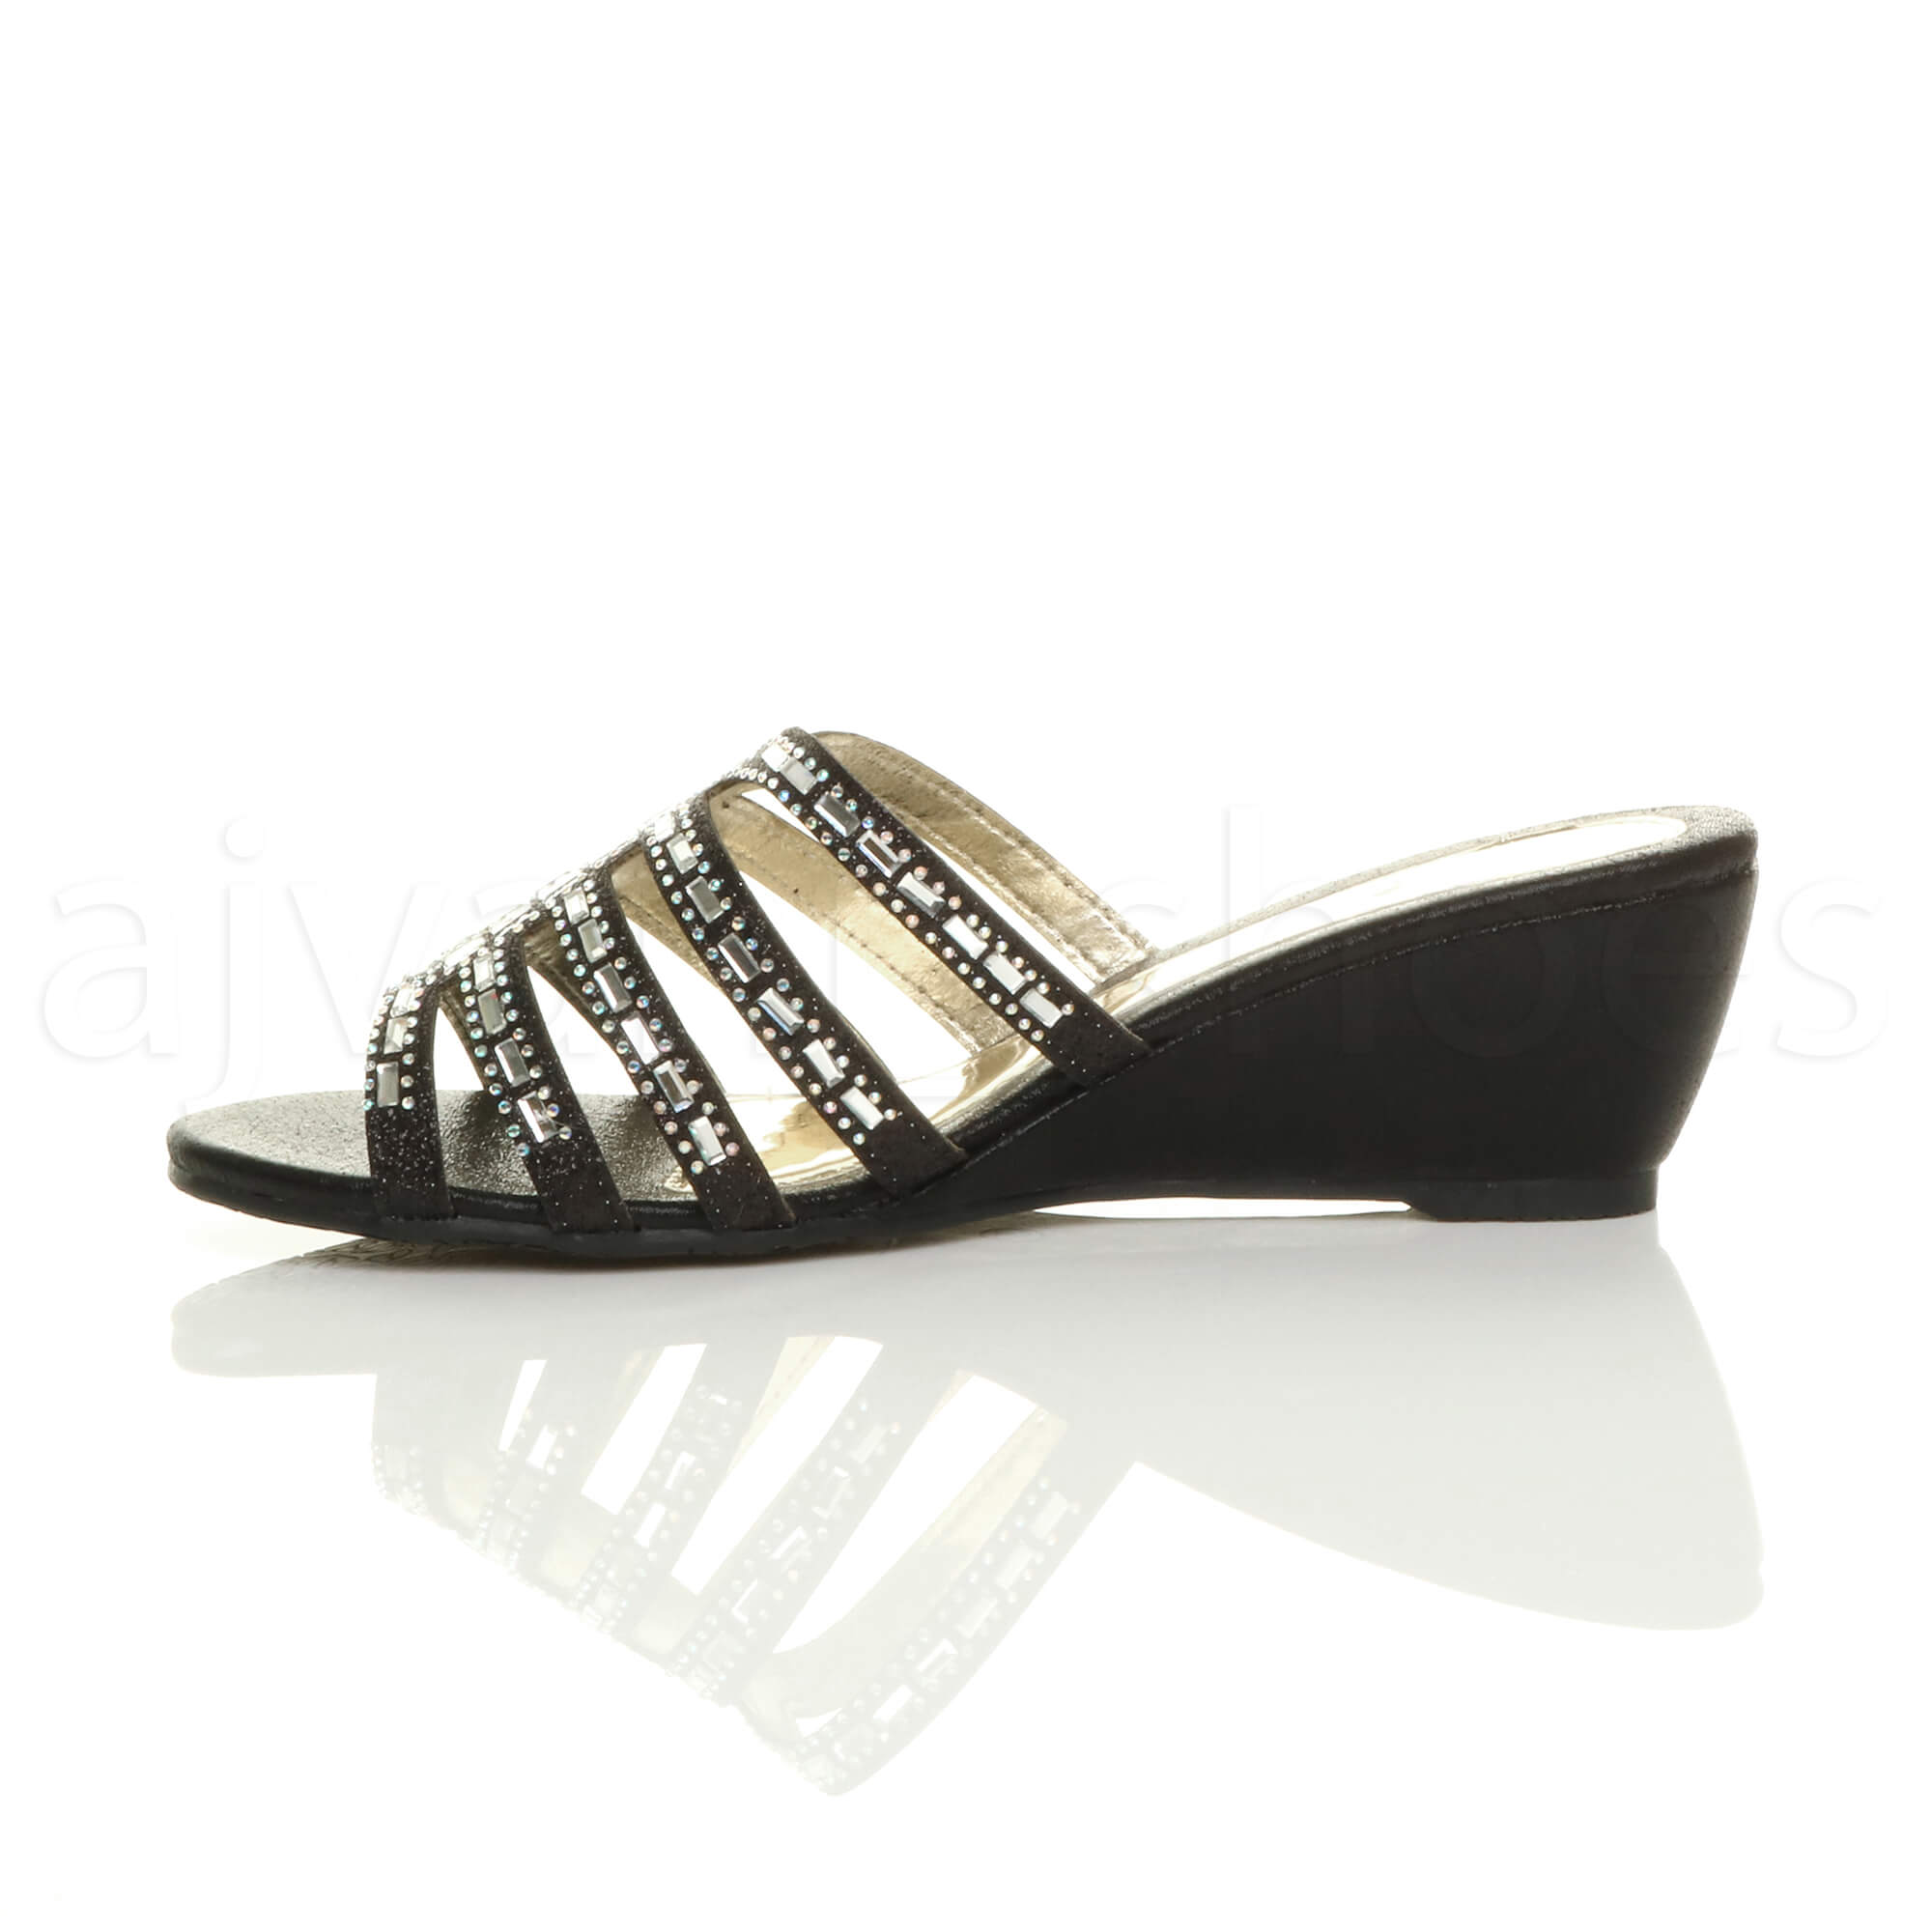 WOMENS-LADIES-LOW-MID-WEDGE-HEEL-DIAMANTE-STRAPPY-EVENING-SANDALS-MULES-SIZE